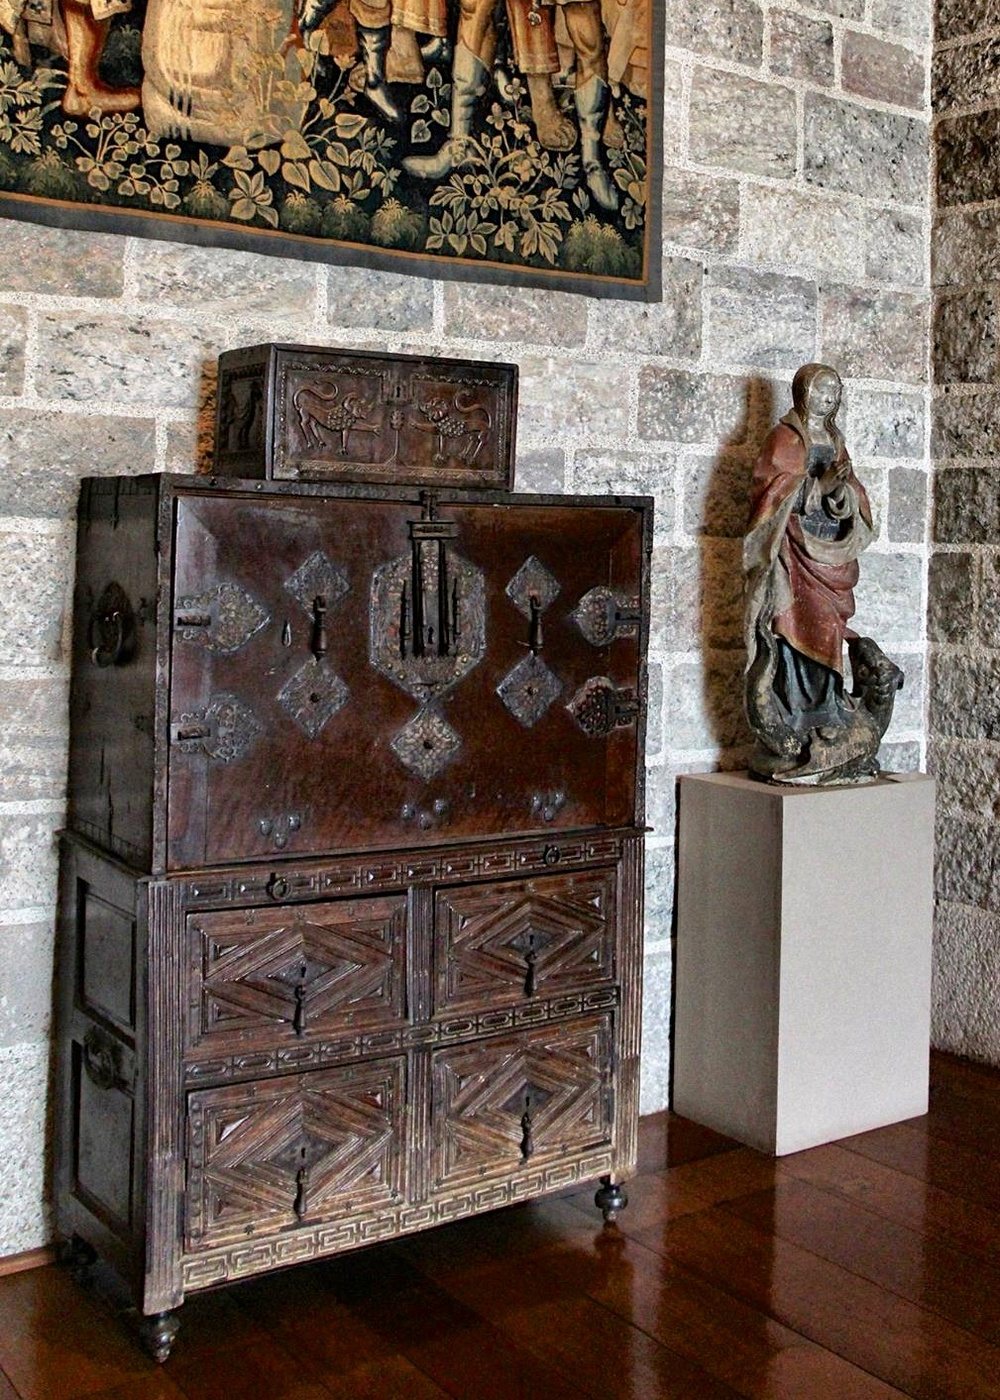 Antique Spanish furniture in Glencairn's Upper Hall - Other Collections — Glencairn Museum